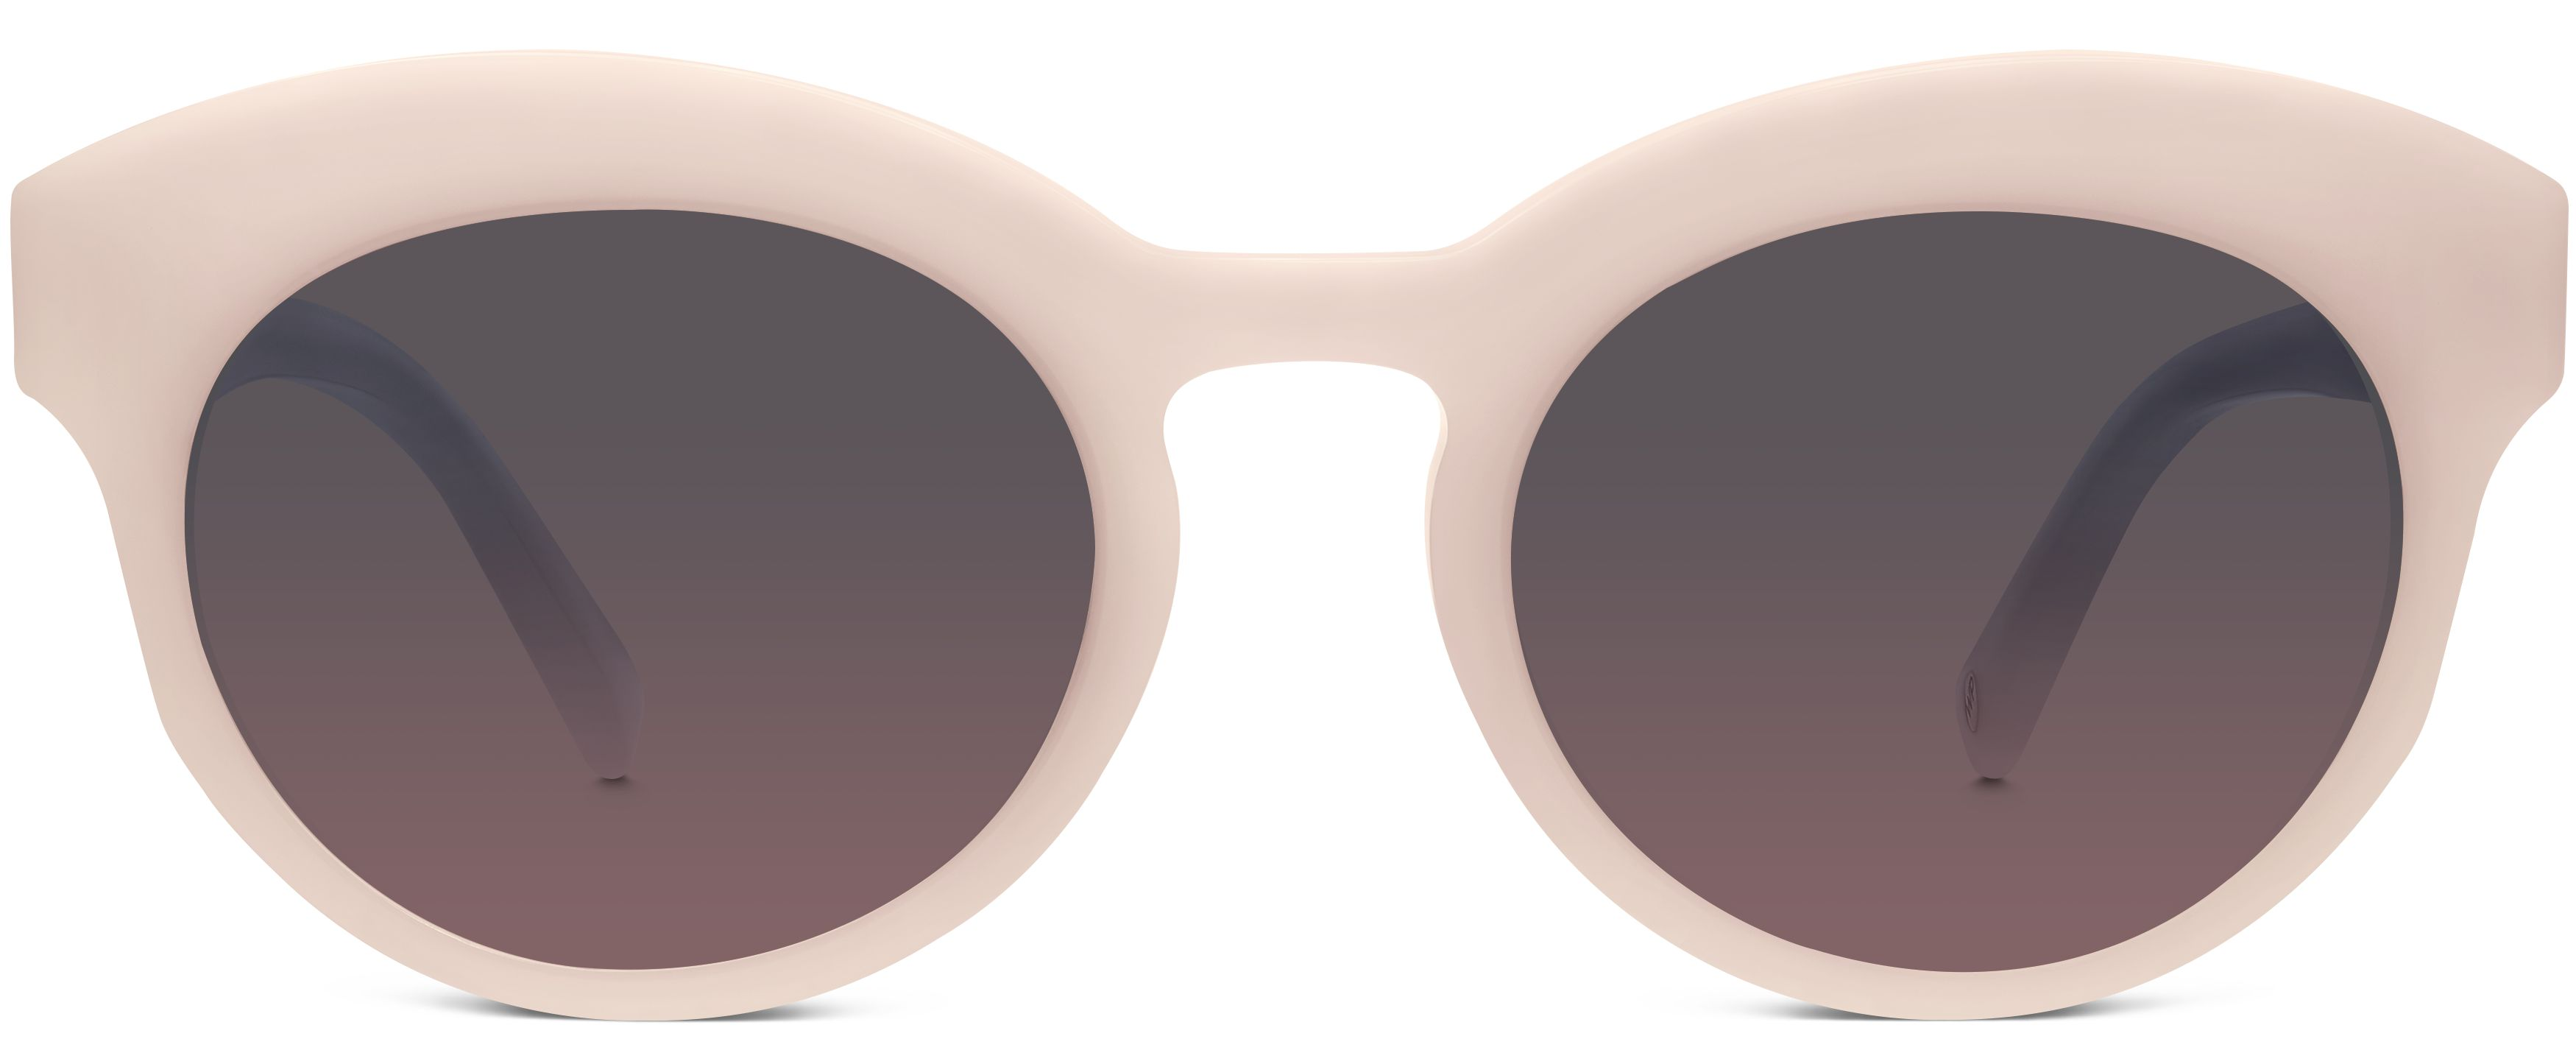 0ebb0b129f Clementine Sunglasses in Tulip with Grey Gradient lenses for Women ...